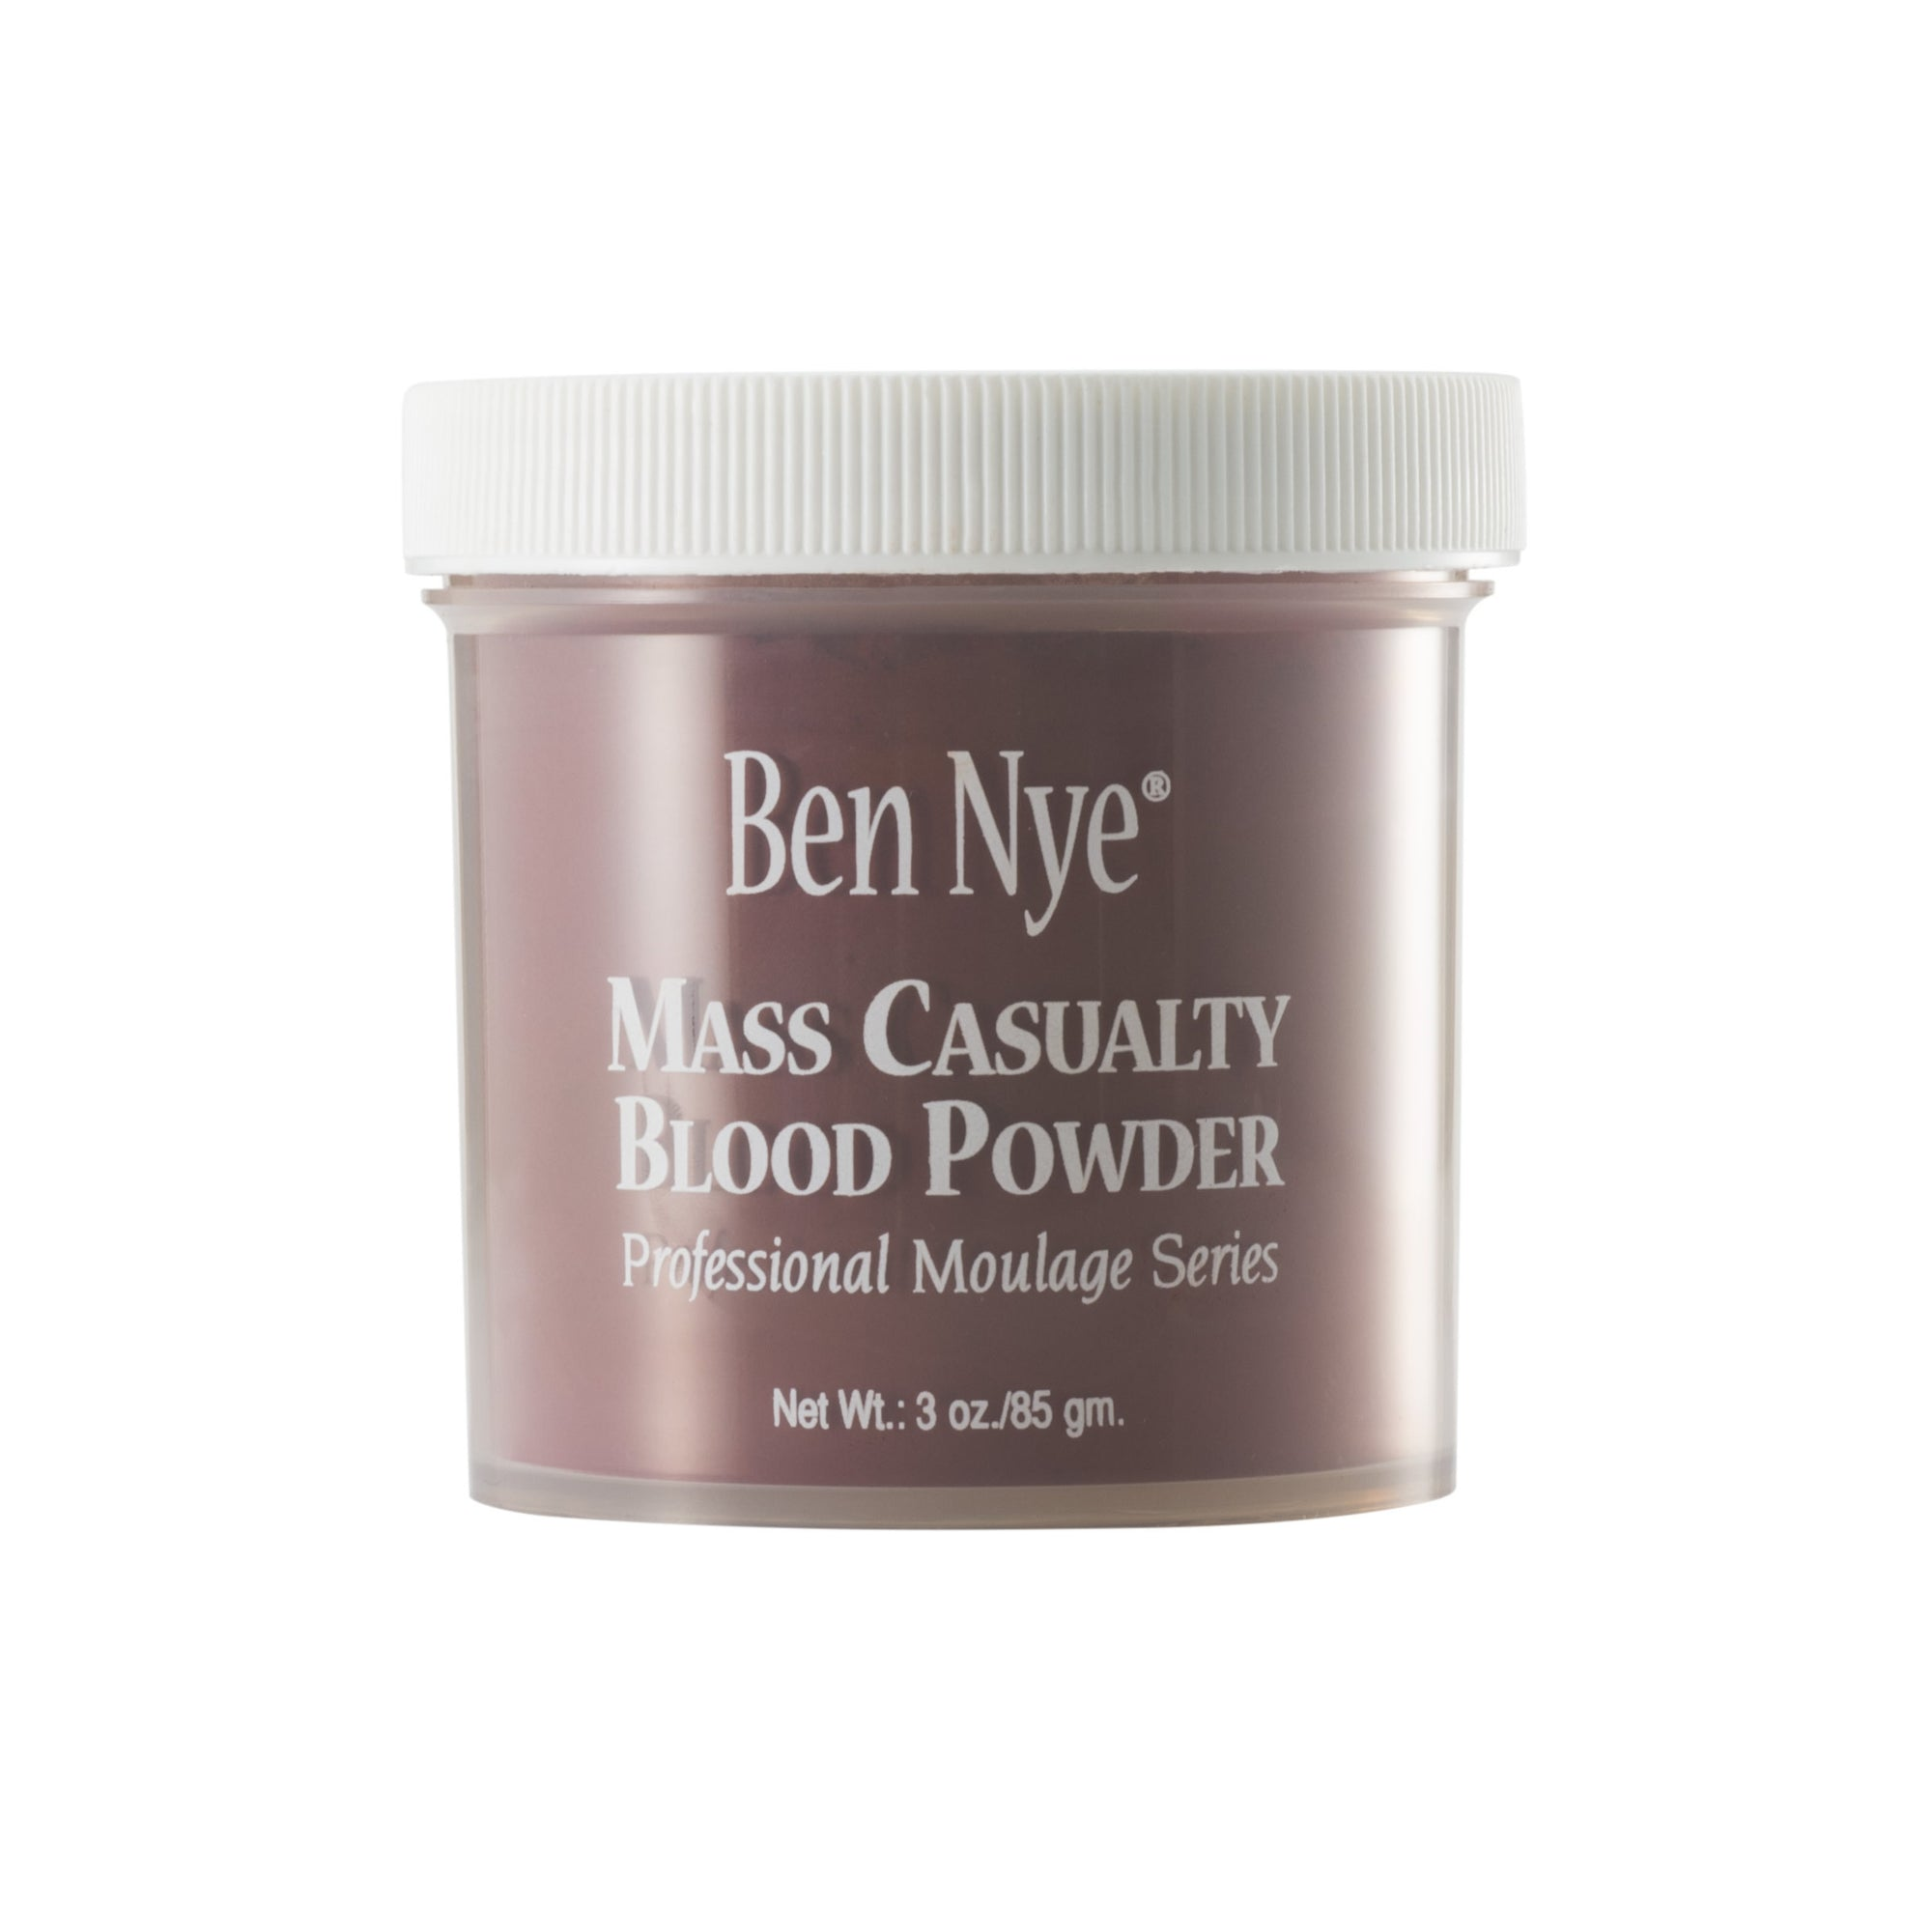 Ben Nye Mass Casualty Blood Powder - Red Carpet FX - Professional Makeup